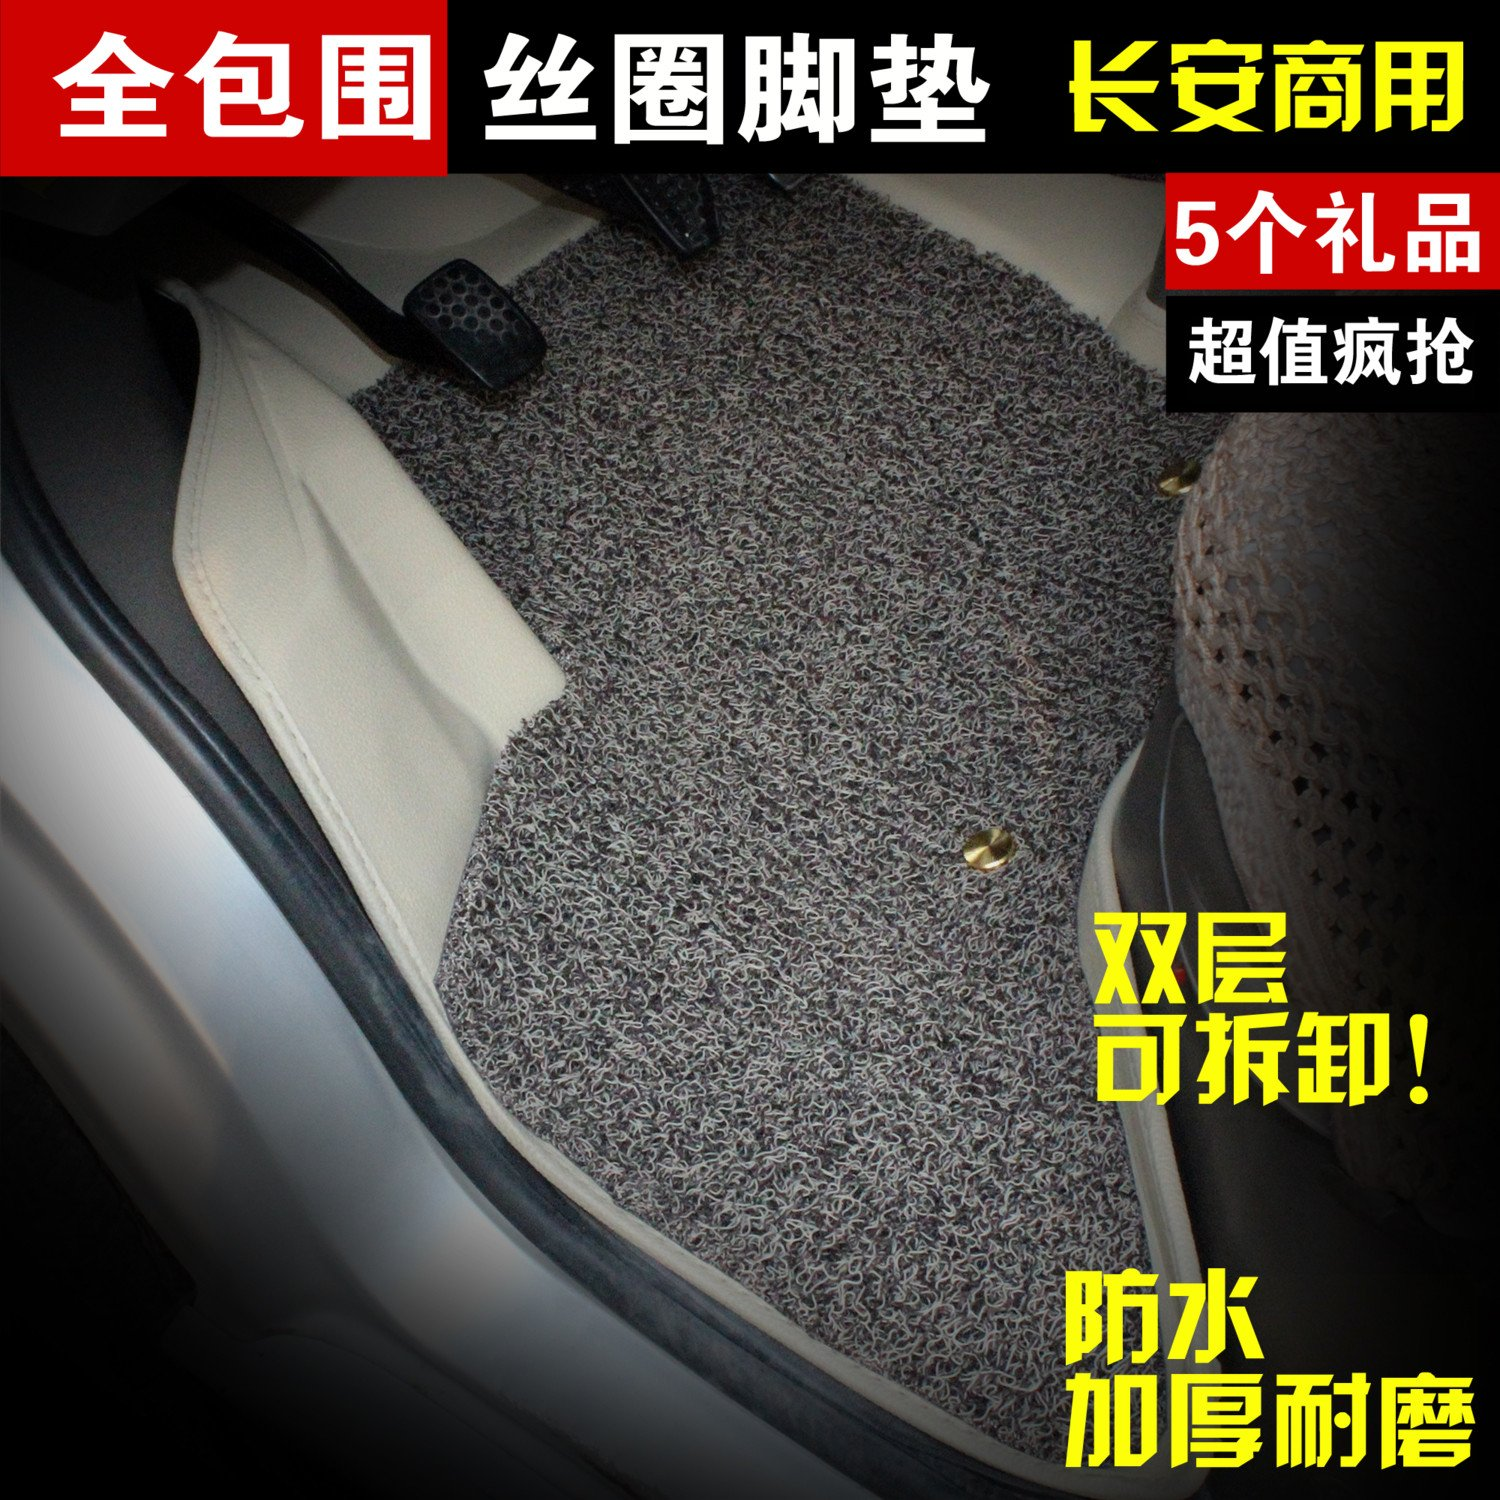 The new changan star star 2 star 7 star 3 star card s201 s460 full leather Surrounded by wire loop mats